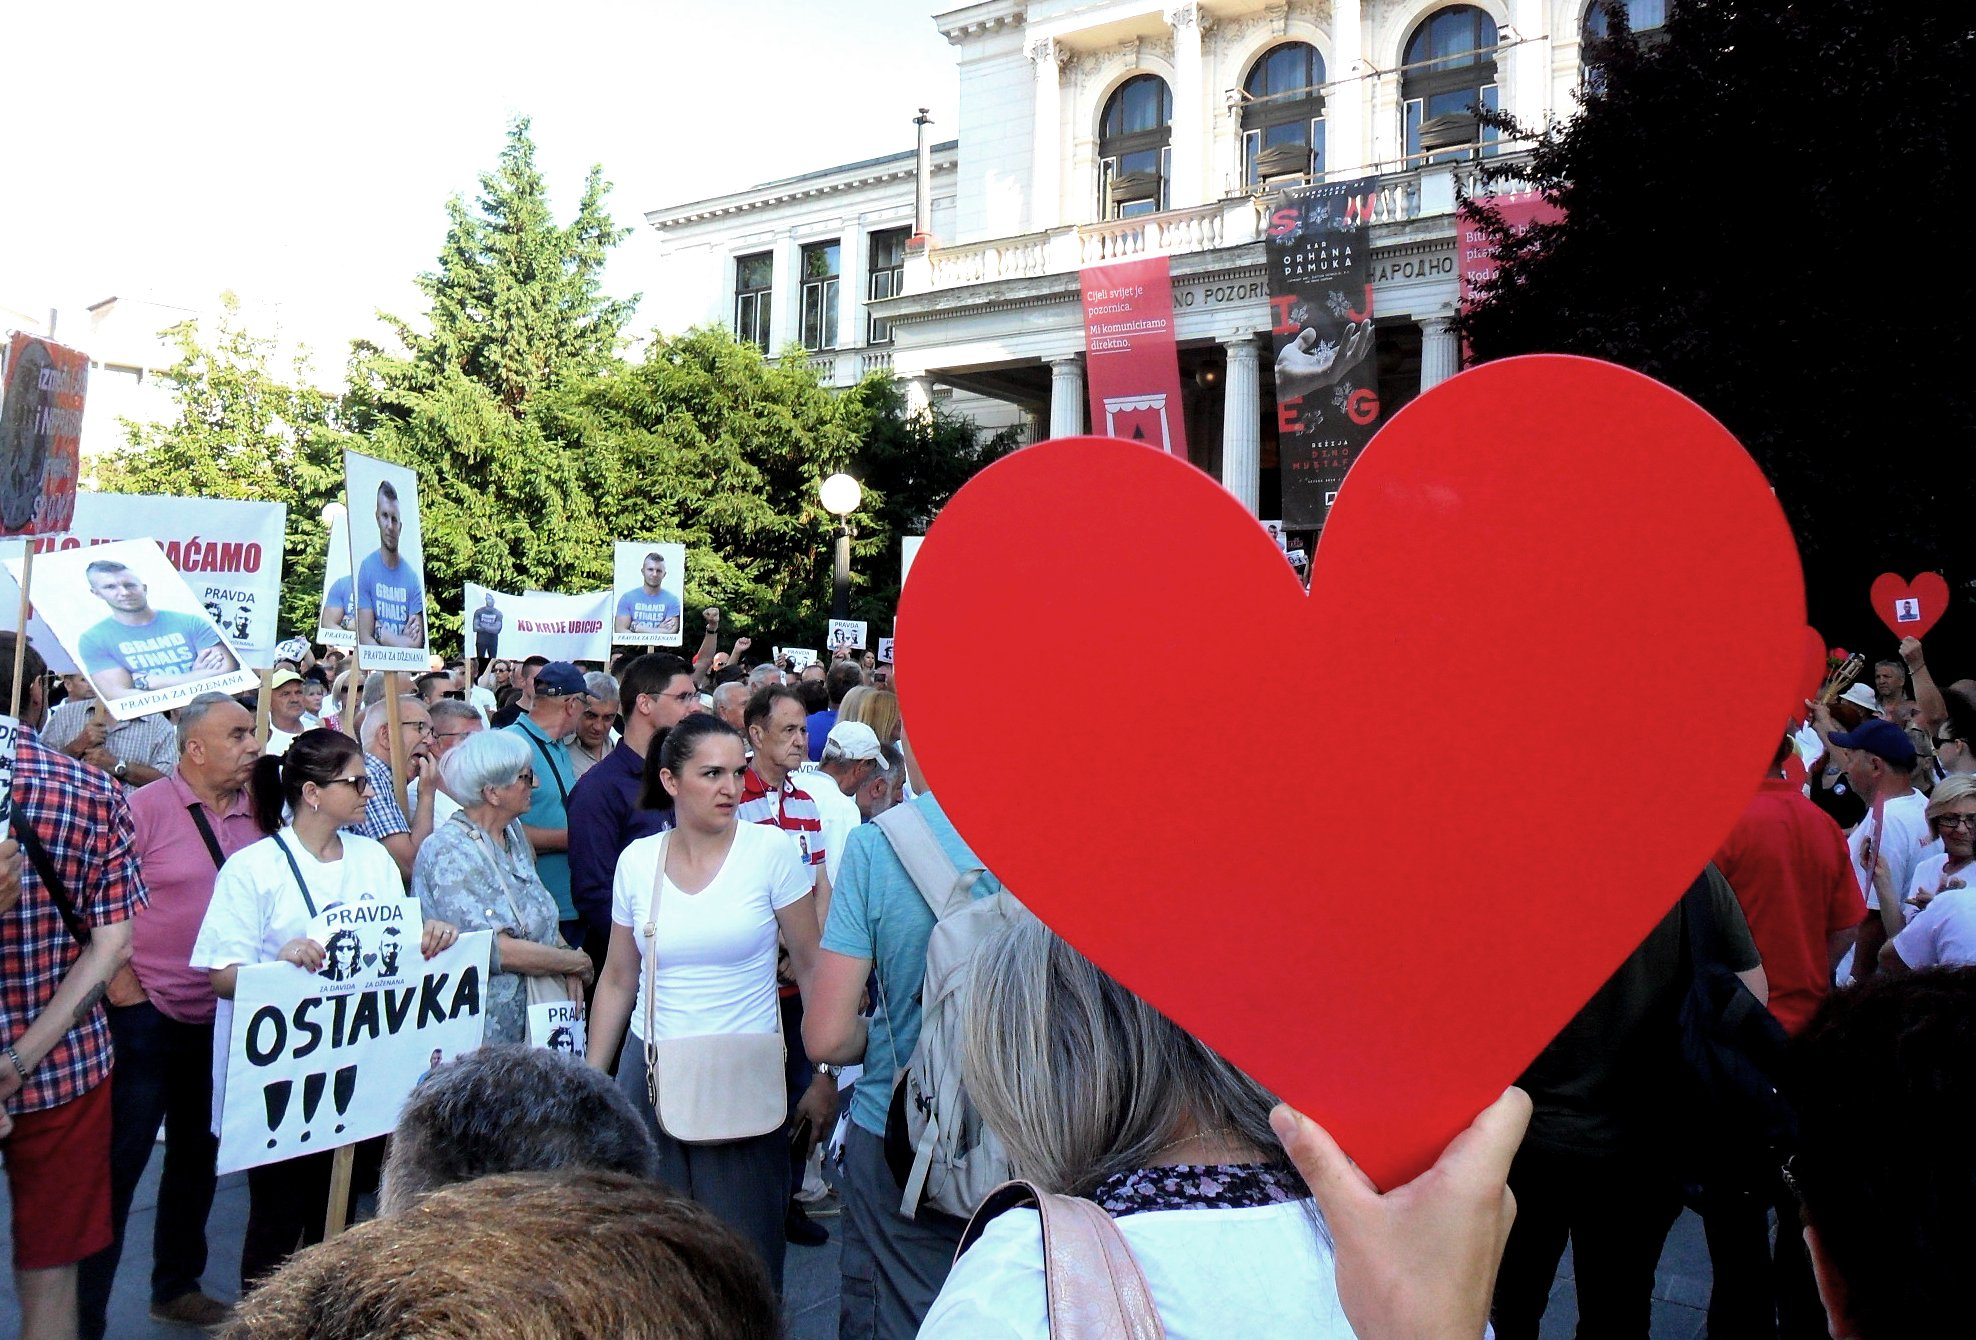 The demonstration to demand justice held last Saturday in Sarajevo (photo by Alfredo Sasso)